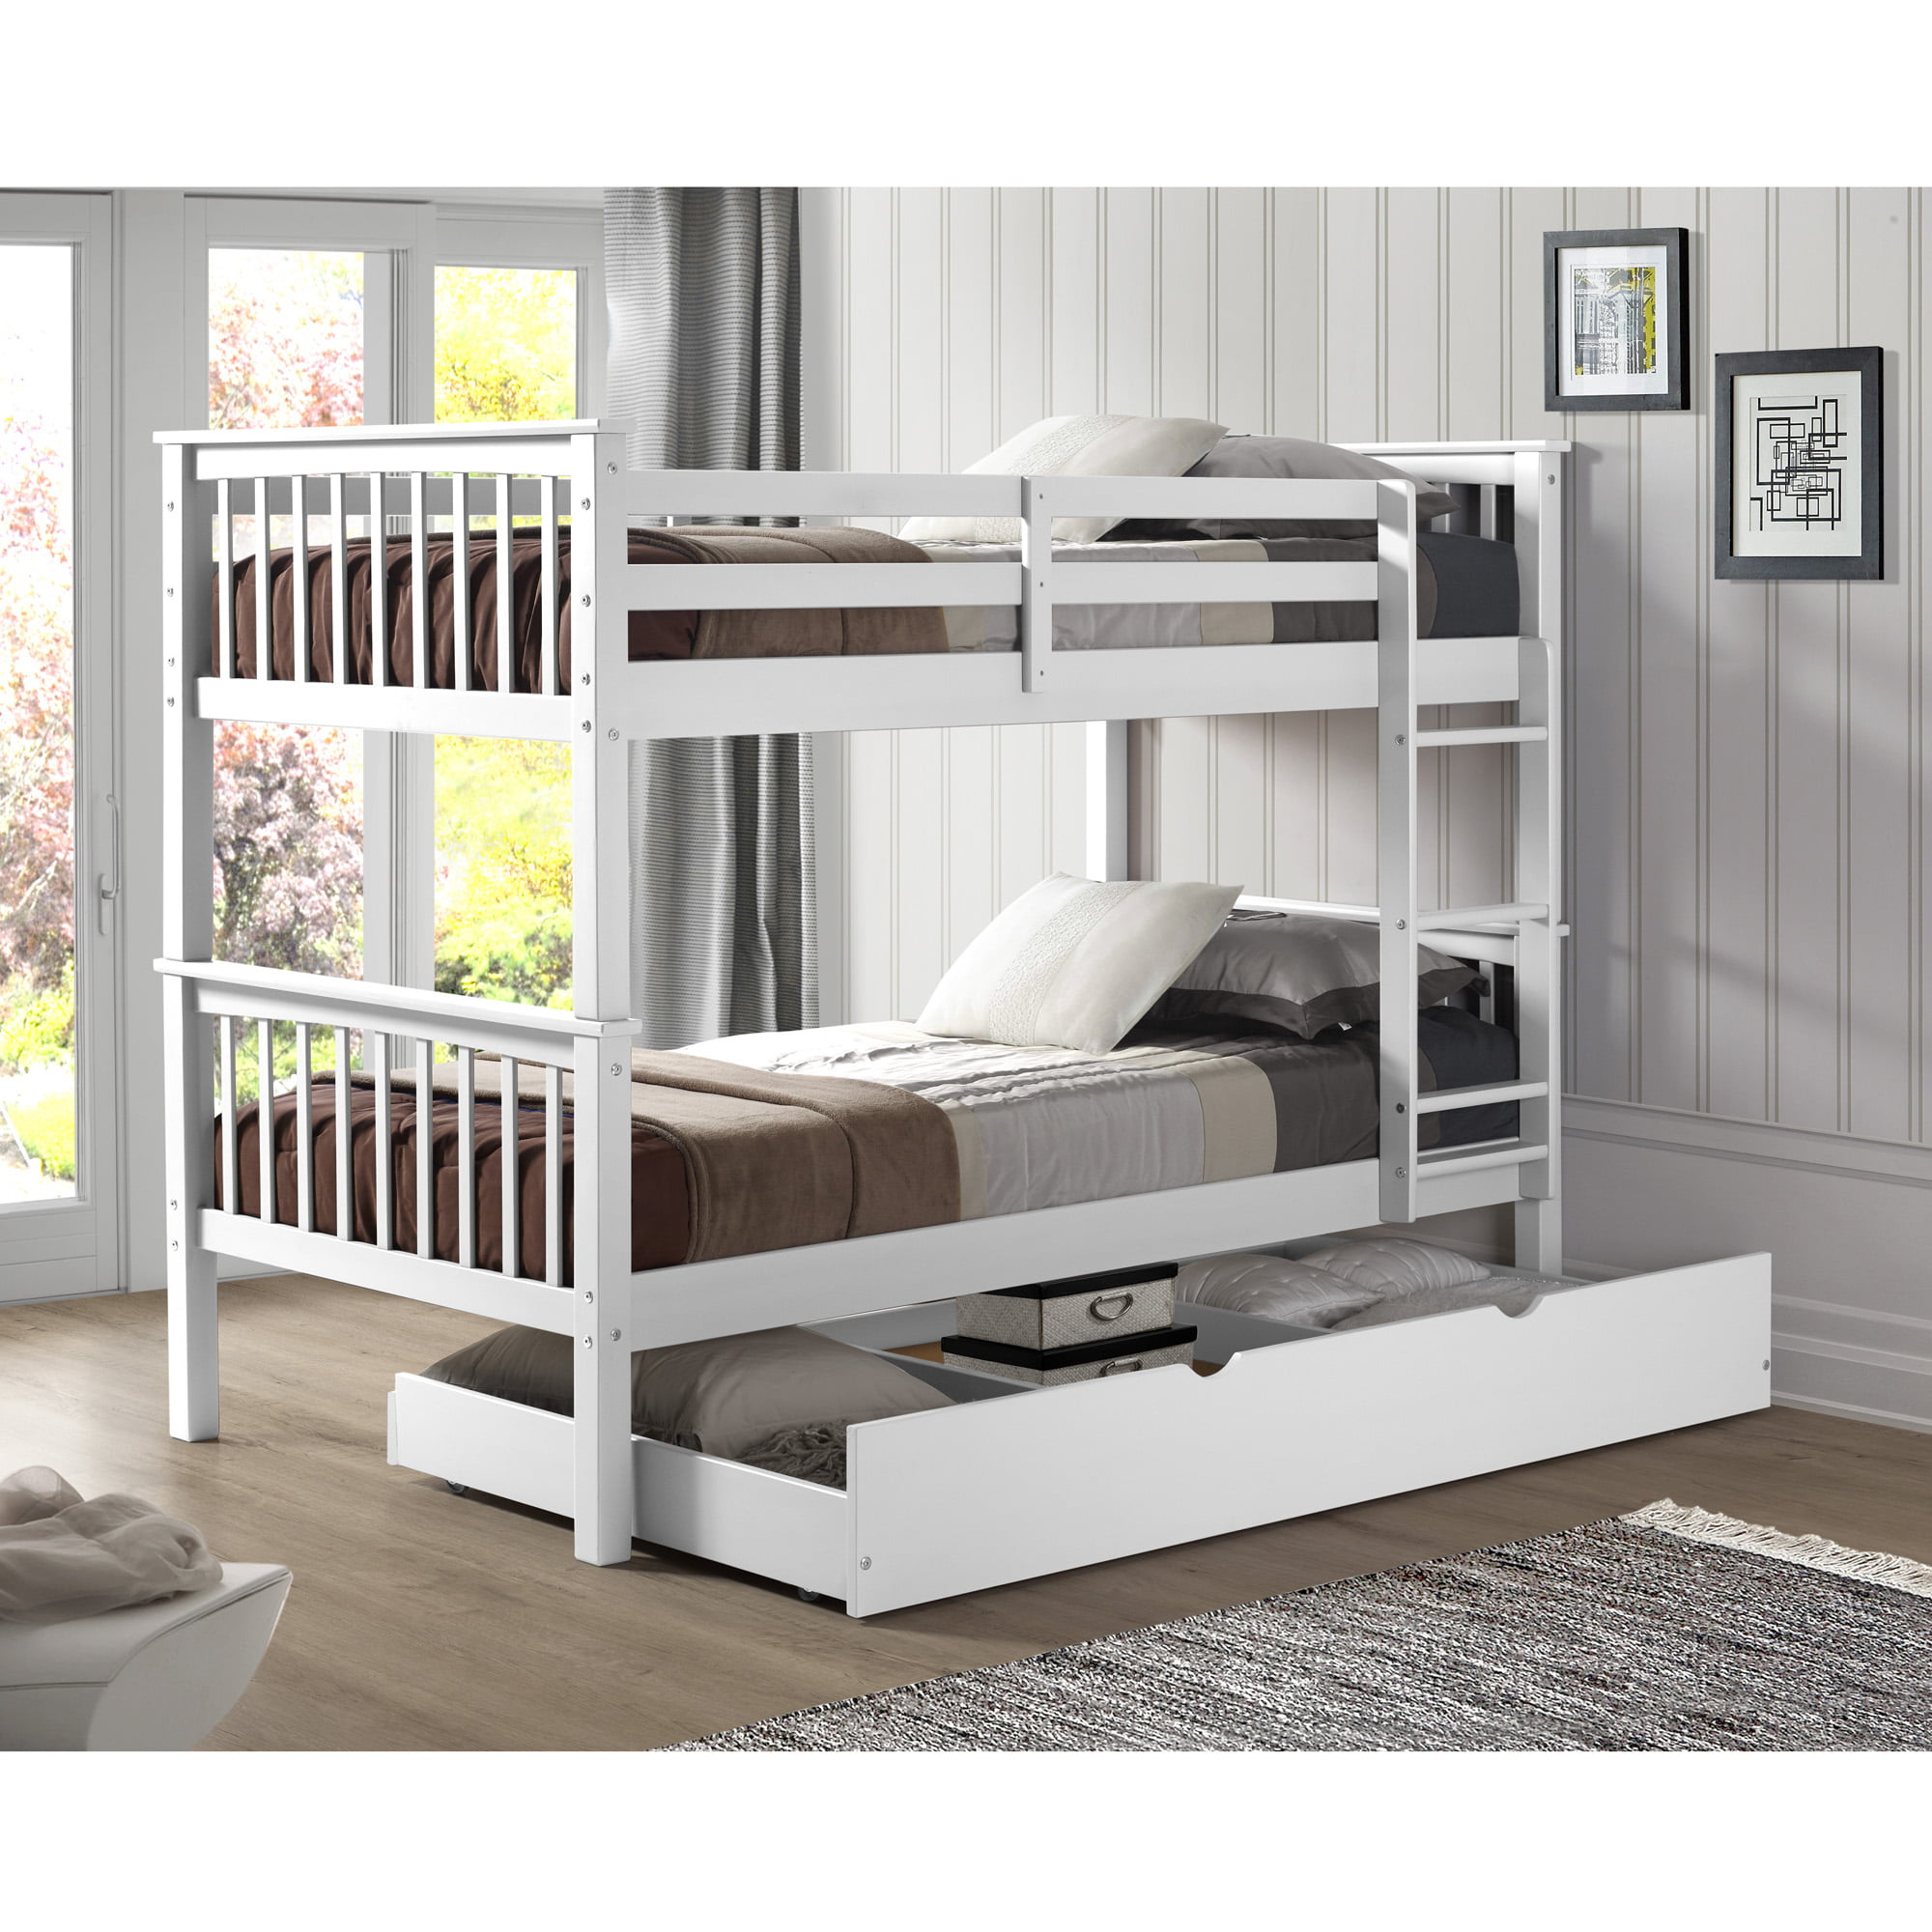 Manor Park Solid Wood Twin Bunk Bed With Trundle Bed